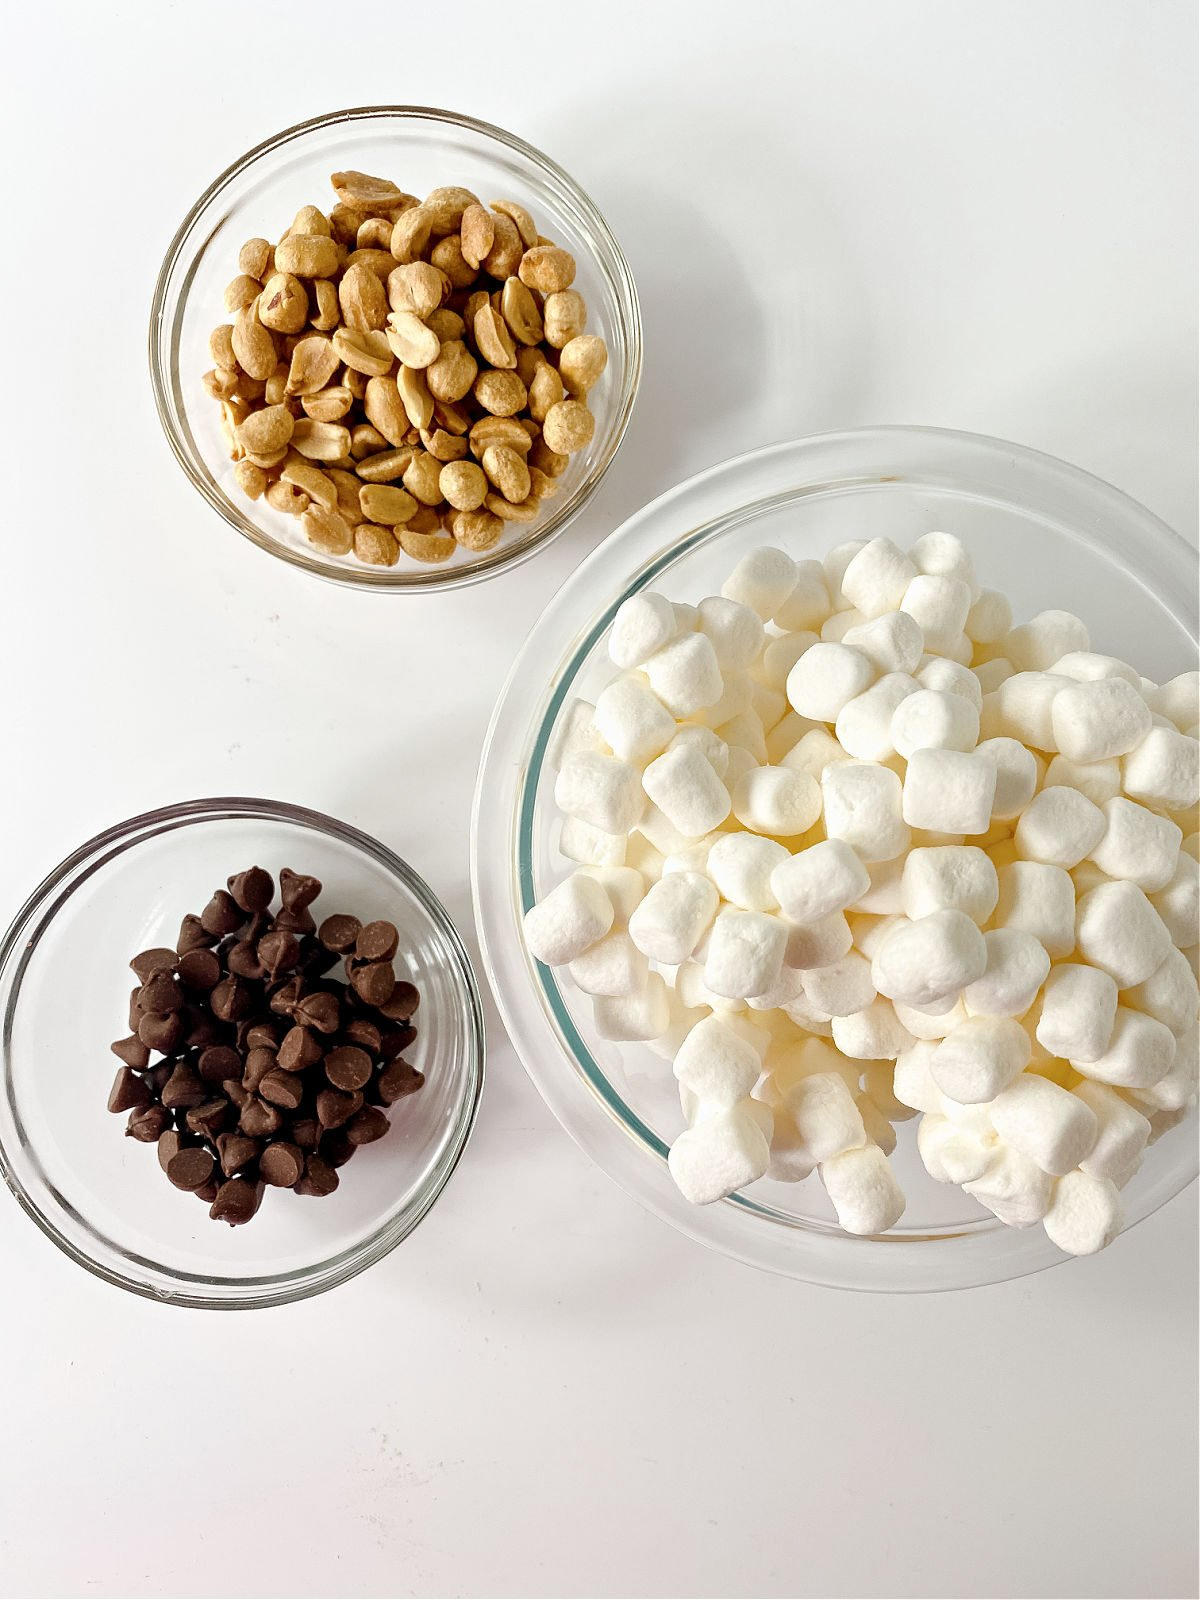 Miniature marshmallows, chocolate chips, and peanuts in glass bowls.